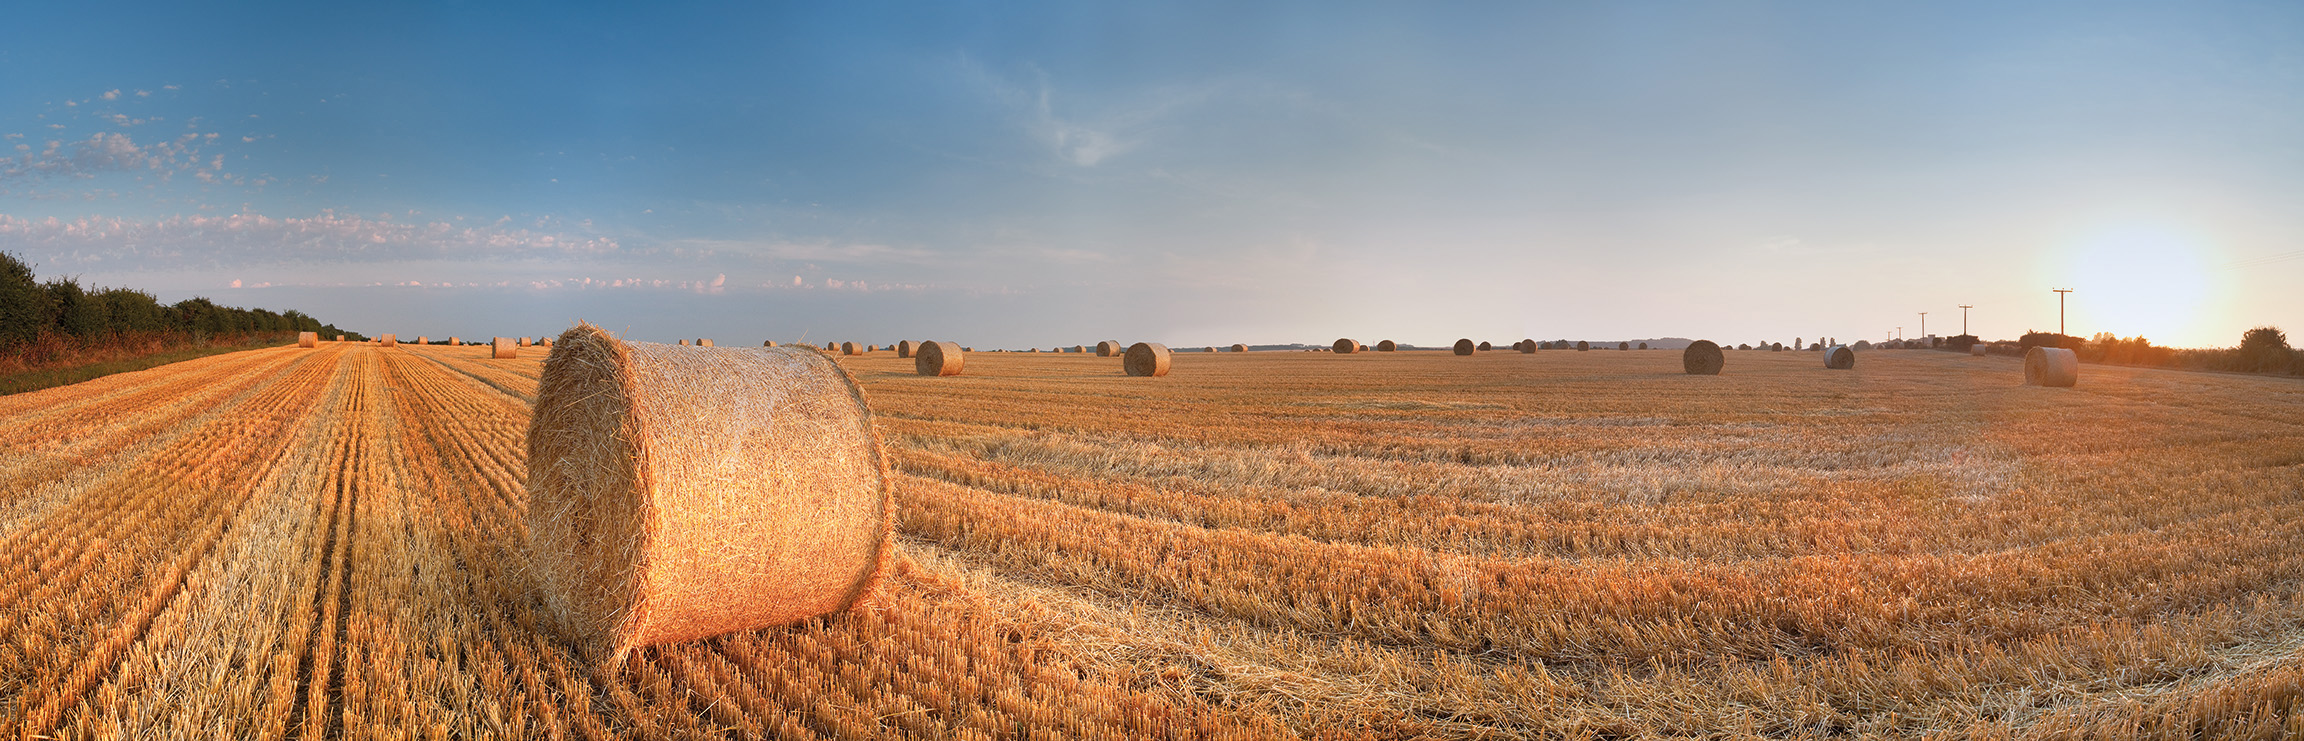 Round Wheat Bales In Field After Harvesting